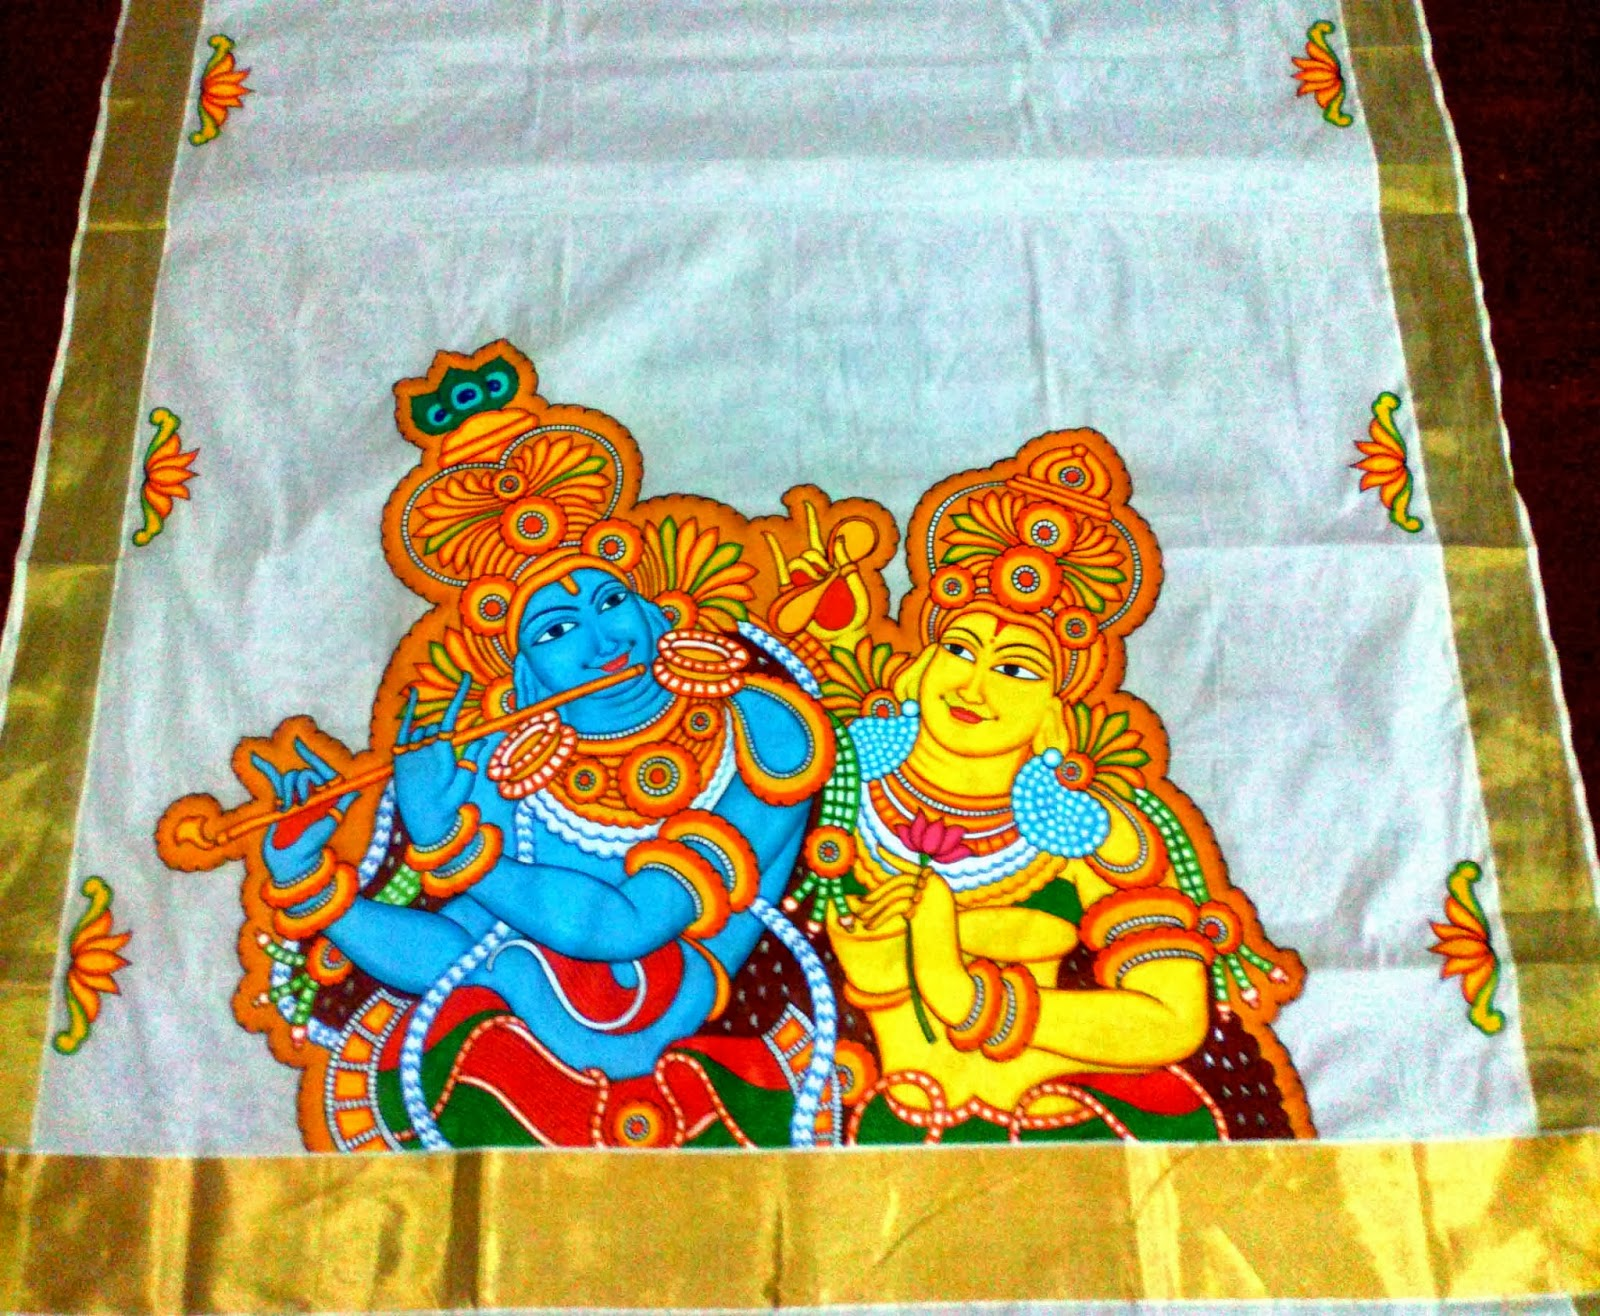 Varnachithra sarees mural for Mural art designs